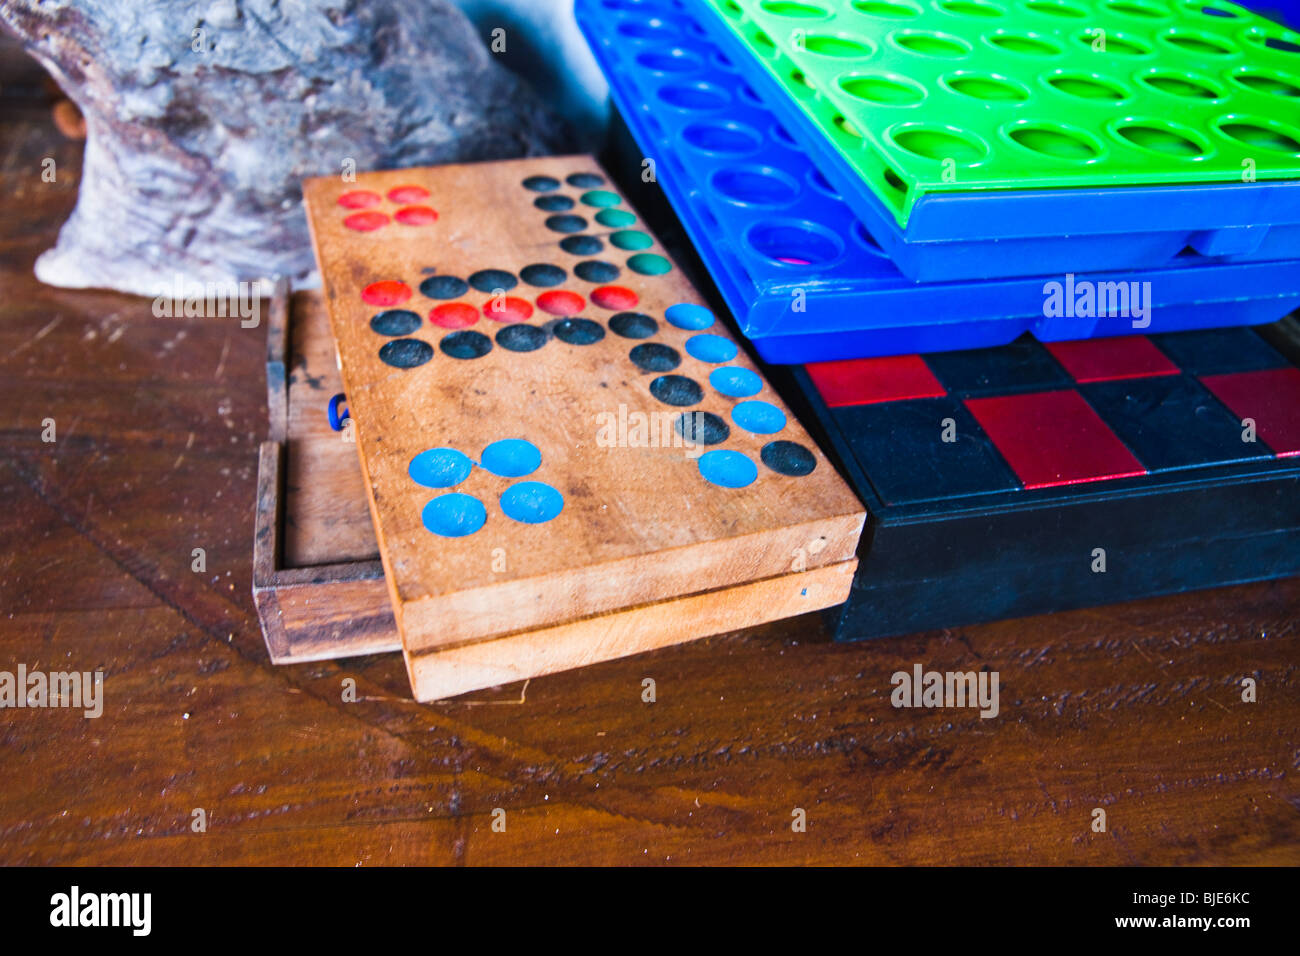 Travel image of various bar entertainment board games from Koh Lanta, an island outside Phuket, in Thailand. - Stock Image